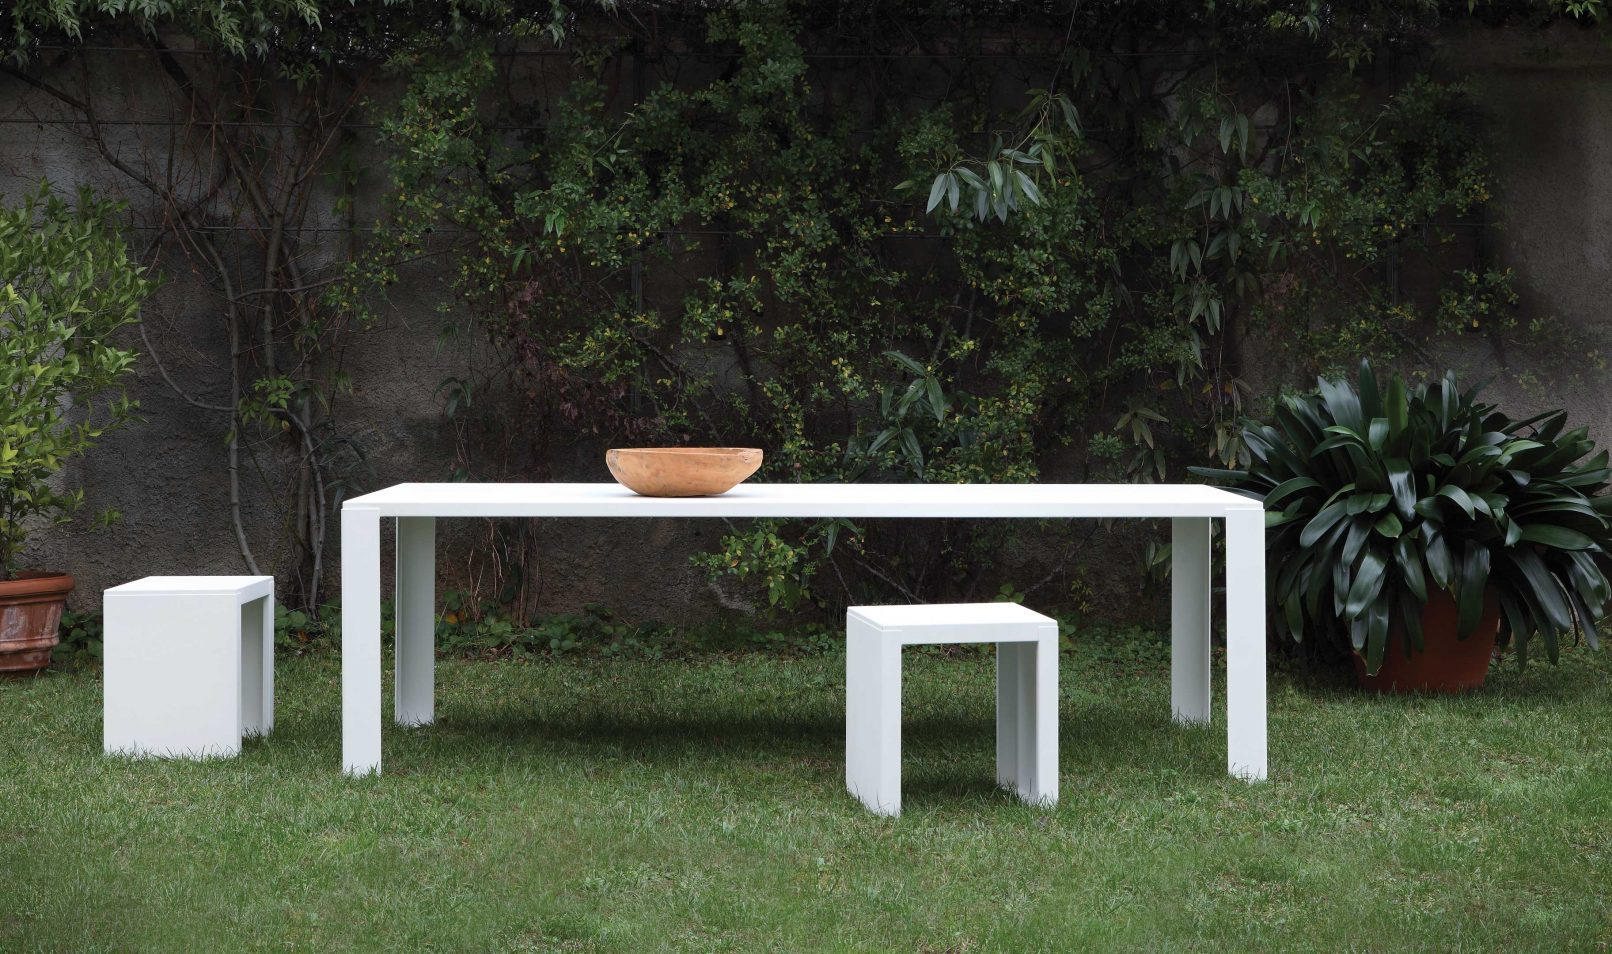 Big Irony Outdoor Table - The Big Irony Outdoor Table sits well among the other BIG IRONY products to give your garden an industrial yet sophisticated feel, however, it also looks perfect alone. It can be placed in the home as well as the garden. It has a demountable frame and top, legs 100 x 100 mm in bent sheet steel. Treated for outdoor use and polyester epoxy painted, rust colour, white or gunmetal colour.  >Products of Outdoor Collection are designed to be used outdoor. If left directly in contact with atmospherical agents without any protection all the time, they will change – as it is happens to all outdoor products. During winter we suggest to tilt the table legs in order to have water flowing and not becoming stagnant.</p>  | Matter of Stuff